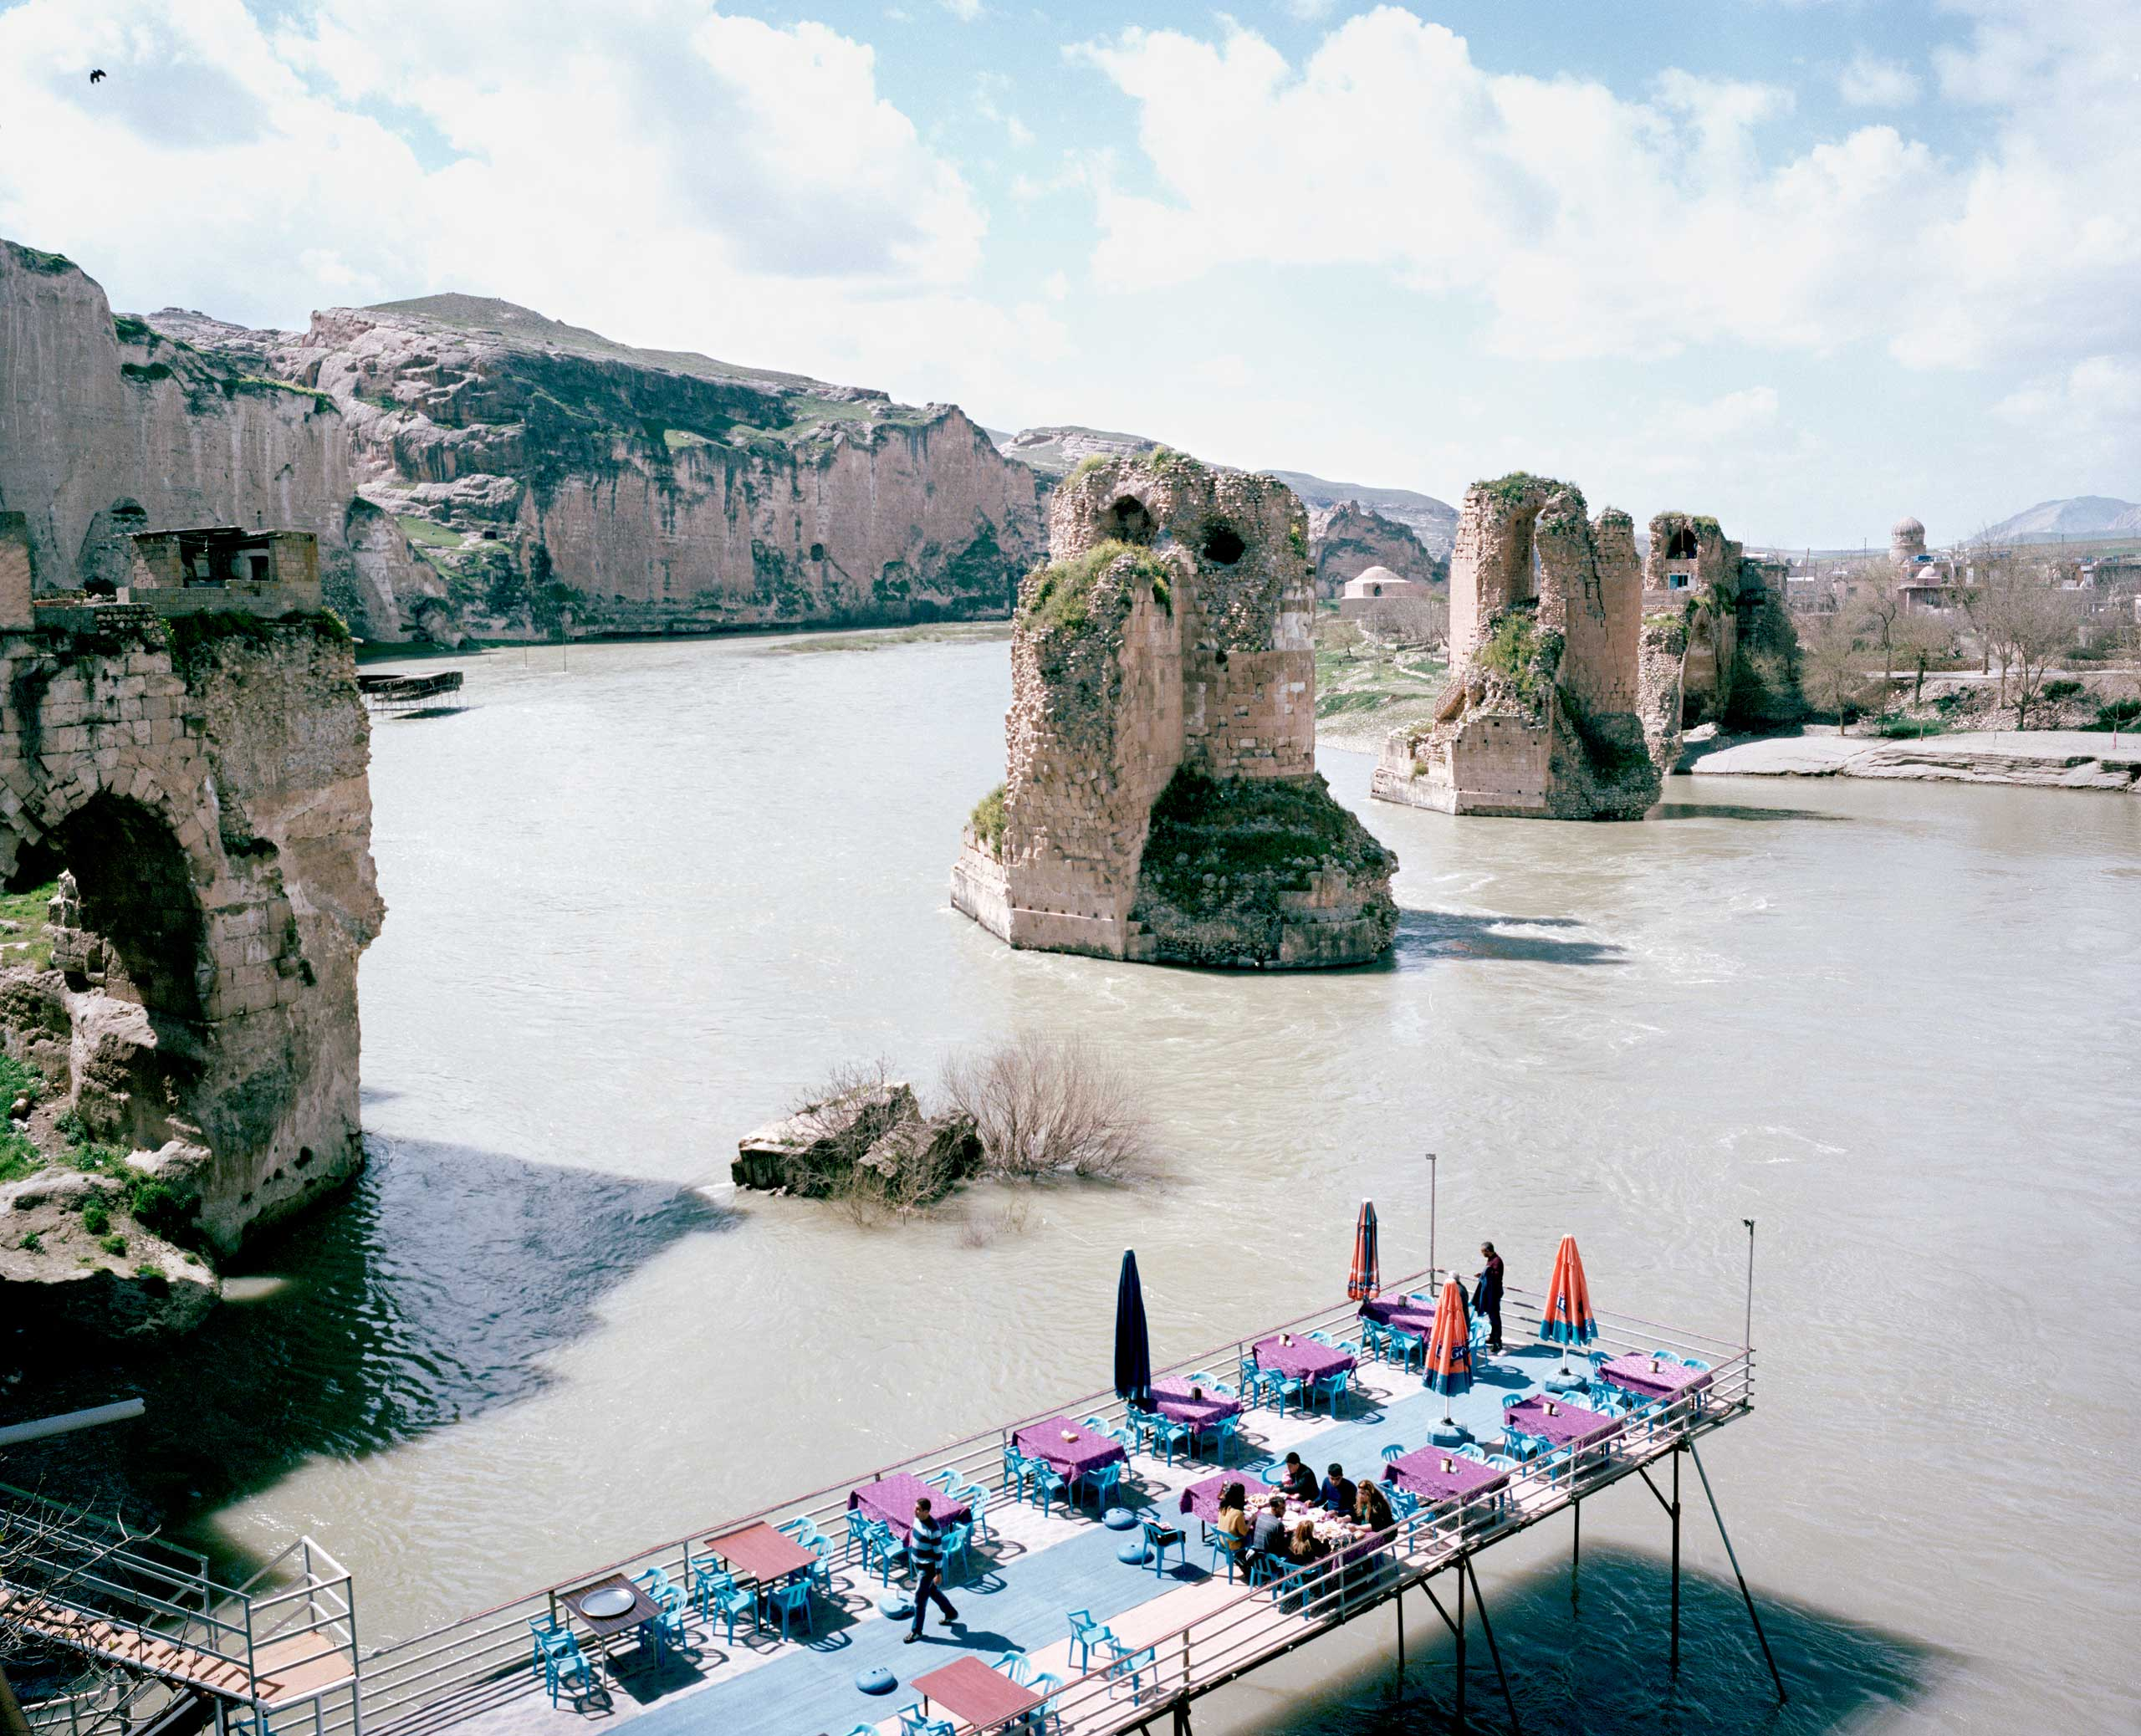 The view from the terrace of a restaurant above the Tigris River. Hasankeyf, Turkey.